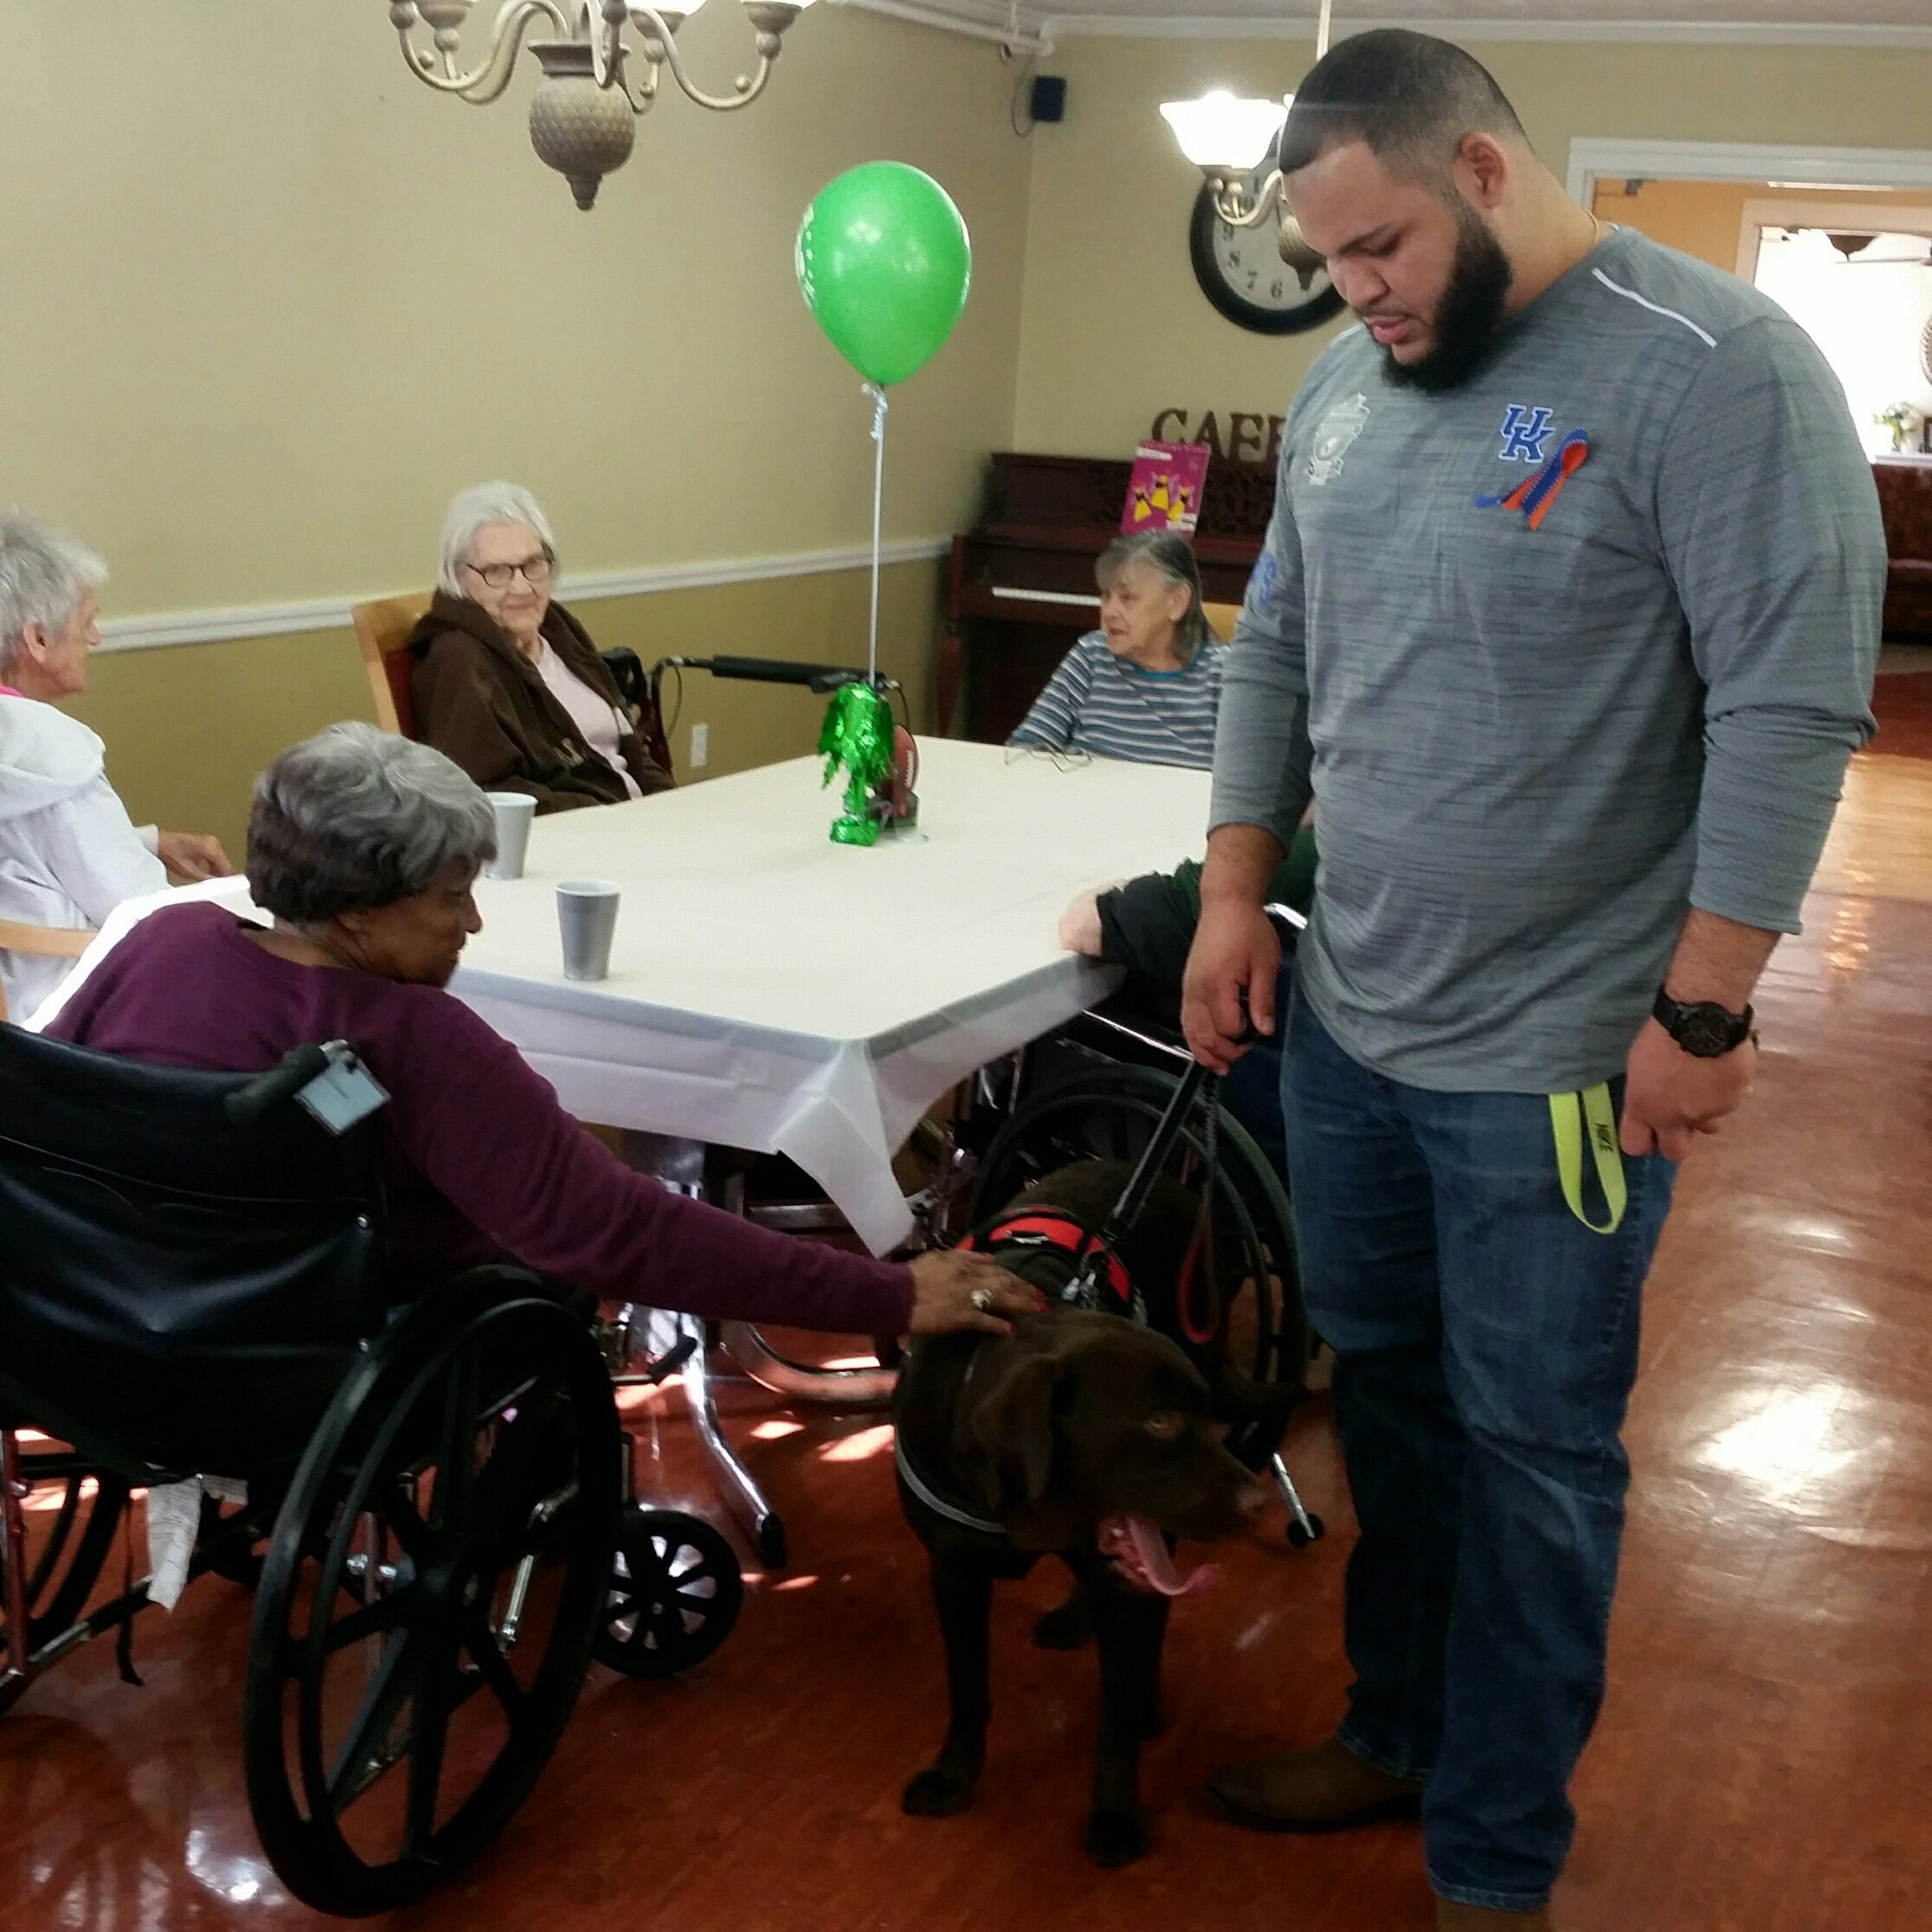 Former Kentucky defensive lineman enjoyed spending time with residents at Cambridge Place at their Super Bowl Party. (Larry Vaught Photo)